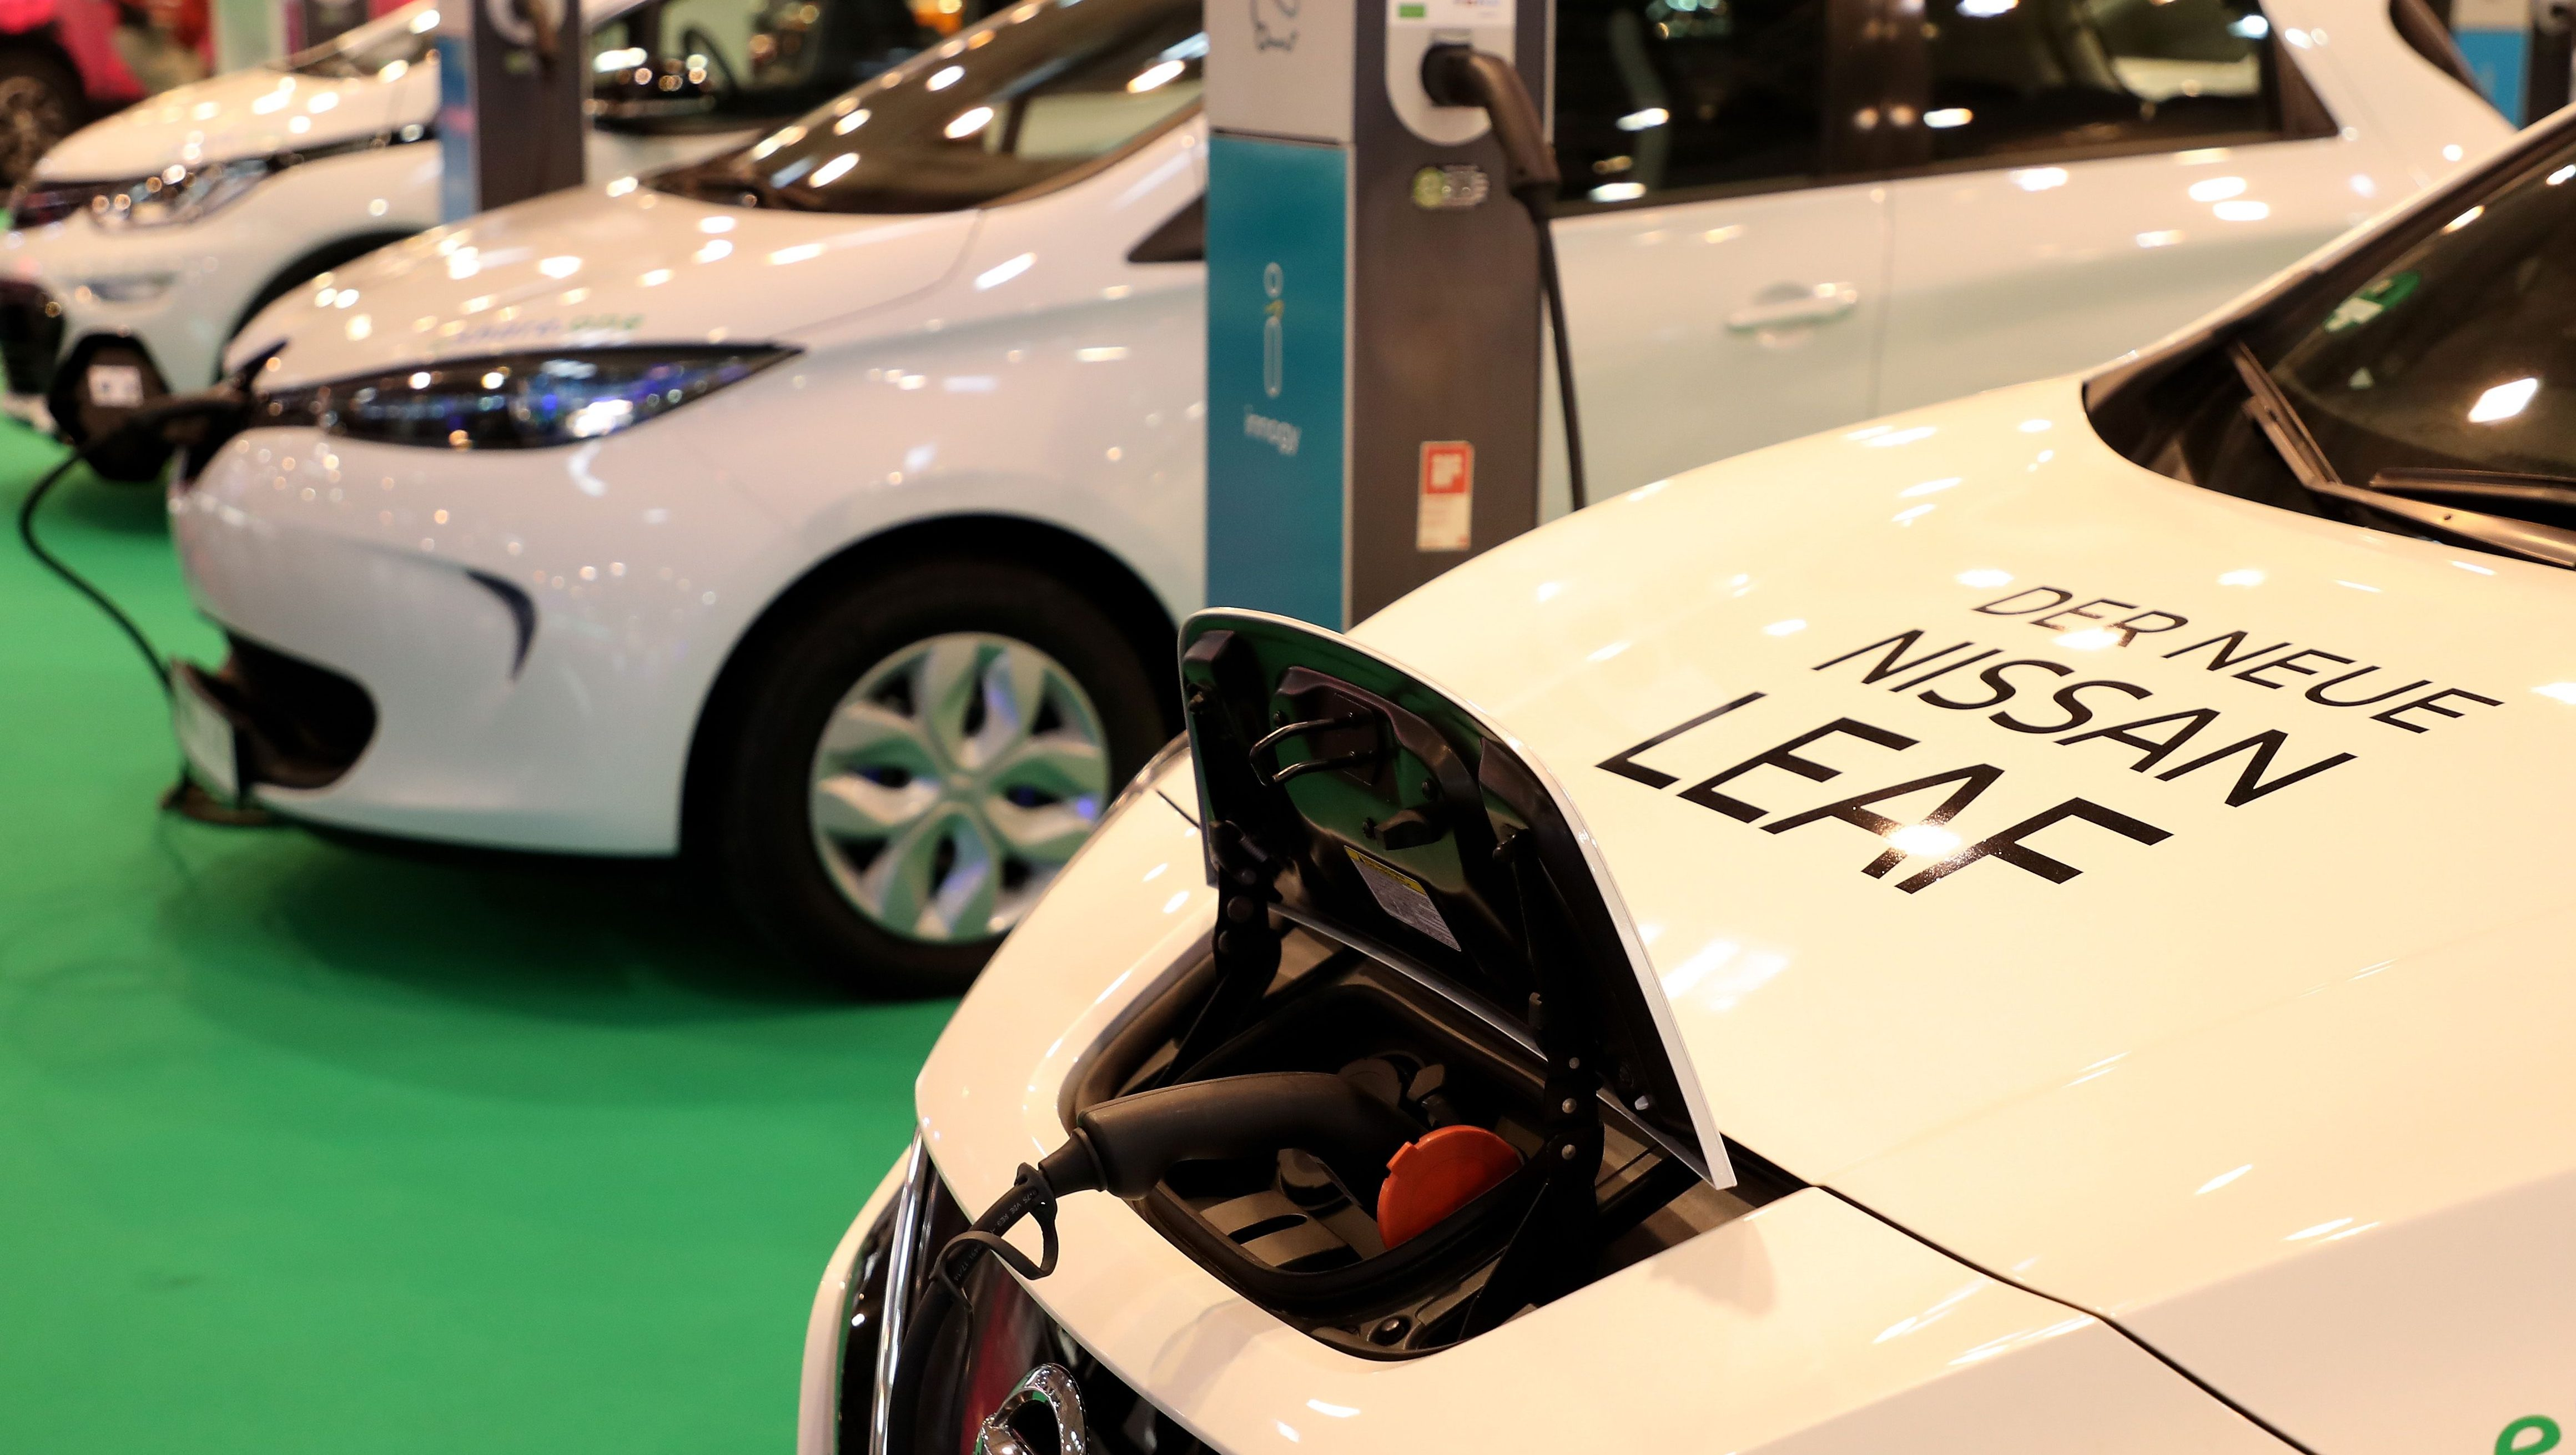 The Electric Car Nissan Leaf Is Charged During Motor Show In Essen Germany